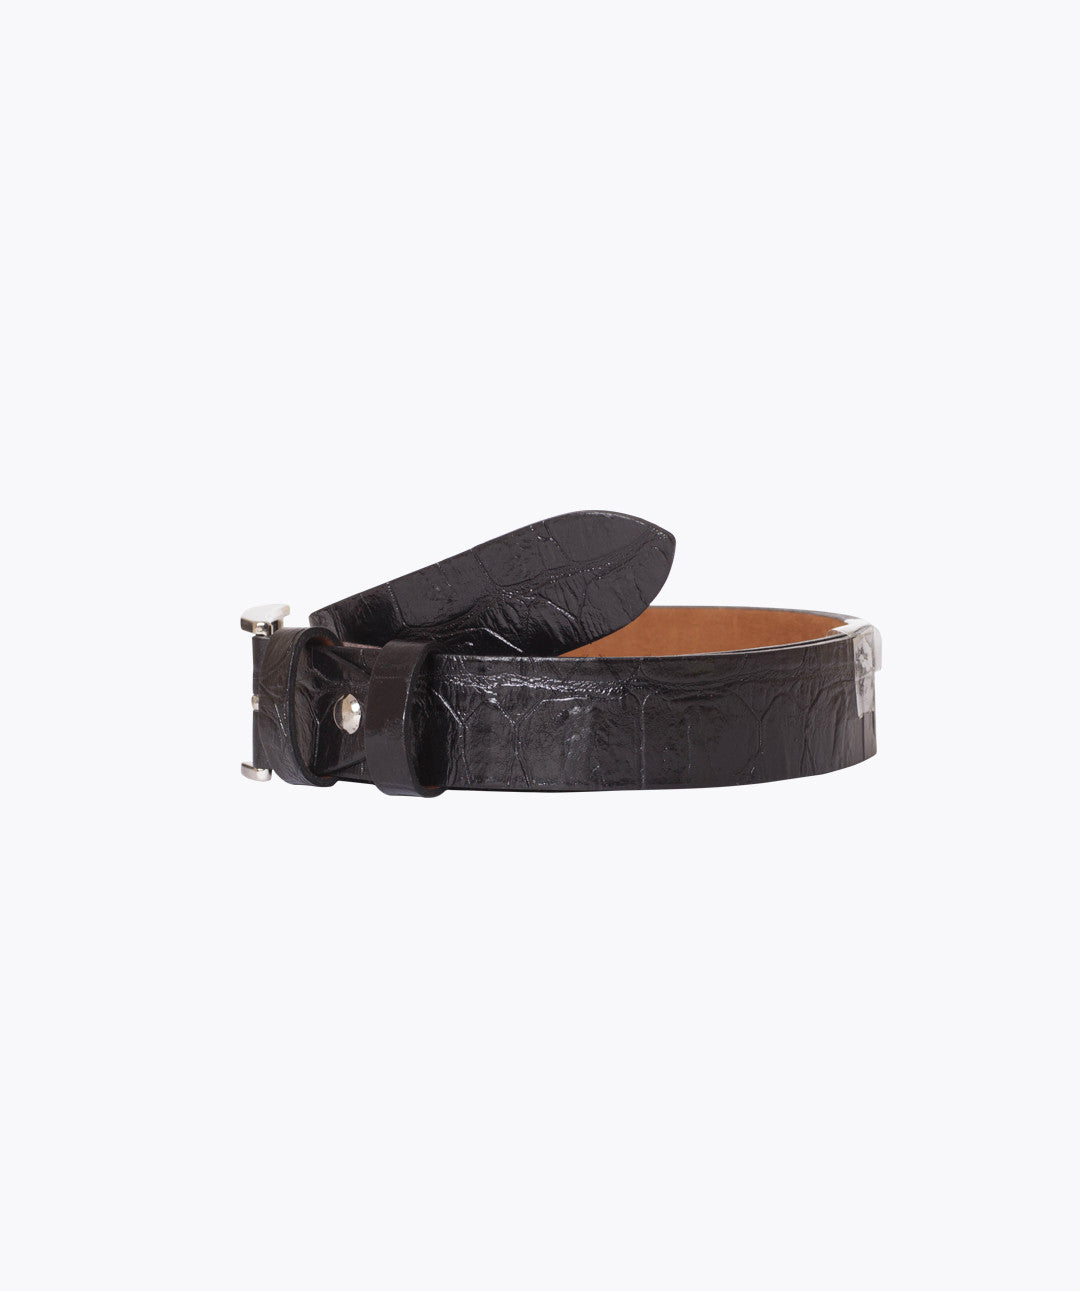 ALLIGATOR LEATHER BELT - BLACK